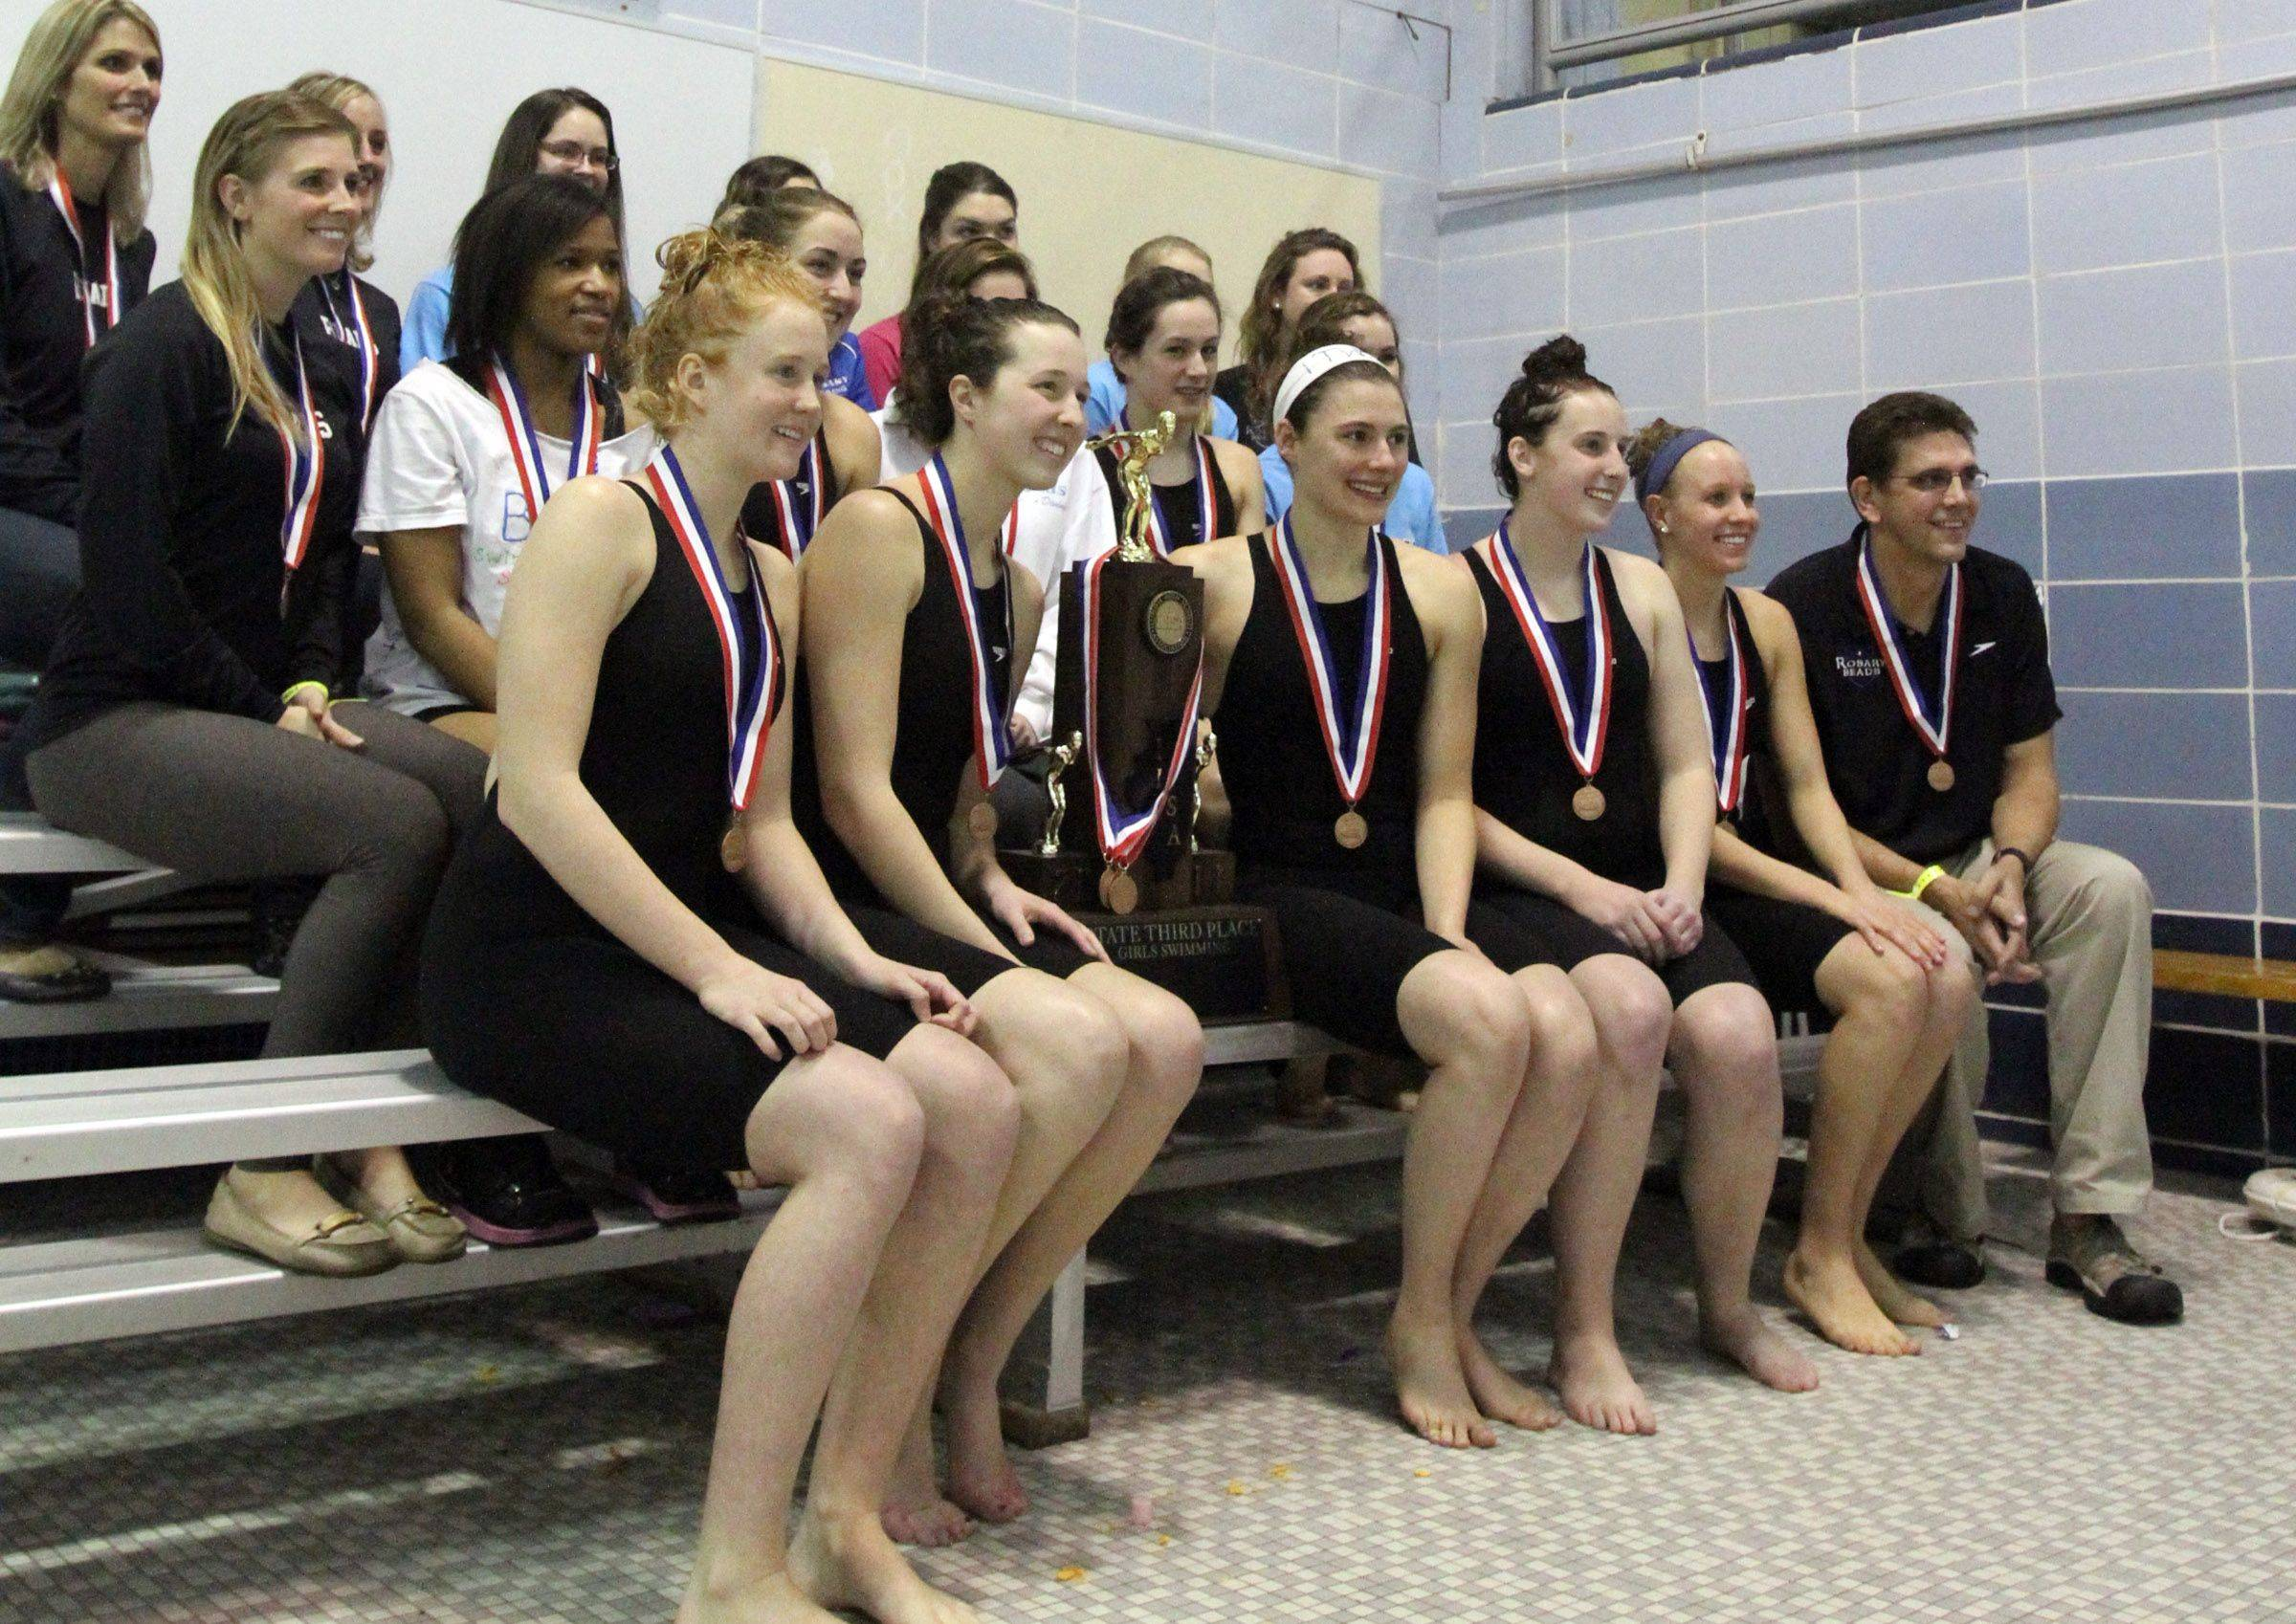 Rosary swim team with the third place team trophy at the IHSA state championships in Winnetka on Saturday, November 19th.